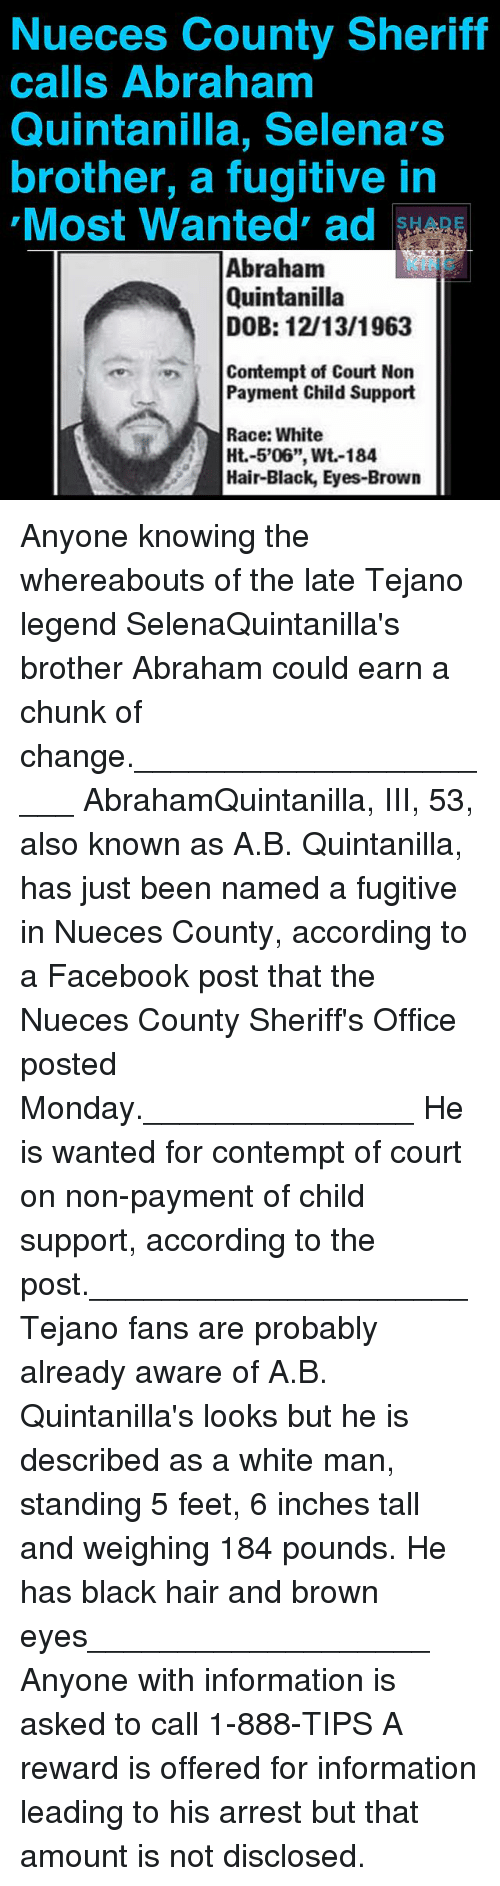 """Contemption: Nueces County Sheriff  calls Abrahamm  Quintanilla, Selena's  brother, a fugitive in  Most Wanted ad  OIs  Abraham  Quintanilla  DOB: 12/13/1963  KING  1)-.  Contempt of Court Non  Payment Child Support  Race: White  Ht.-5'06"""", Wt-184  Hair-Black, Eyes-Brown Anyone knowing the whereabouts of the late Tejano legend SelenaQuintanilla's brother Abraham could earn a chunk of change.______________________ AbrahamQuintanilla, III, 53, also known as A.B. Quintanilla, has just been named a fugitive in Nueces County, according to a Facebook post that the Nueces County Sheriff's Office posted Monday._______________ He is wanted for contempt of court on non-payment of child support, according to the post._____________________ Tejano fans are probably already aware of A.B. Quintanilla's looks but he is described as a white man, standing 5 feet, 6 inches tall and weighing 184 pounds. He has black hair and brown eyes___________________ Anyone with information is asked to call 1-888-TIPS A reward is offered for information leading to his arrest but that amount is not disclosed."""